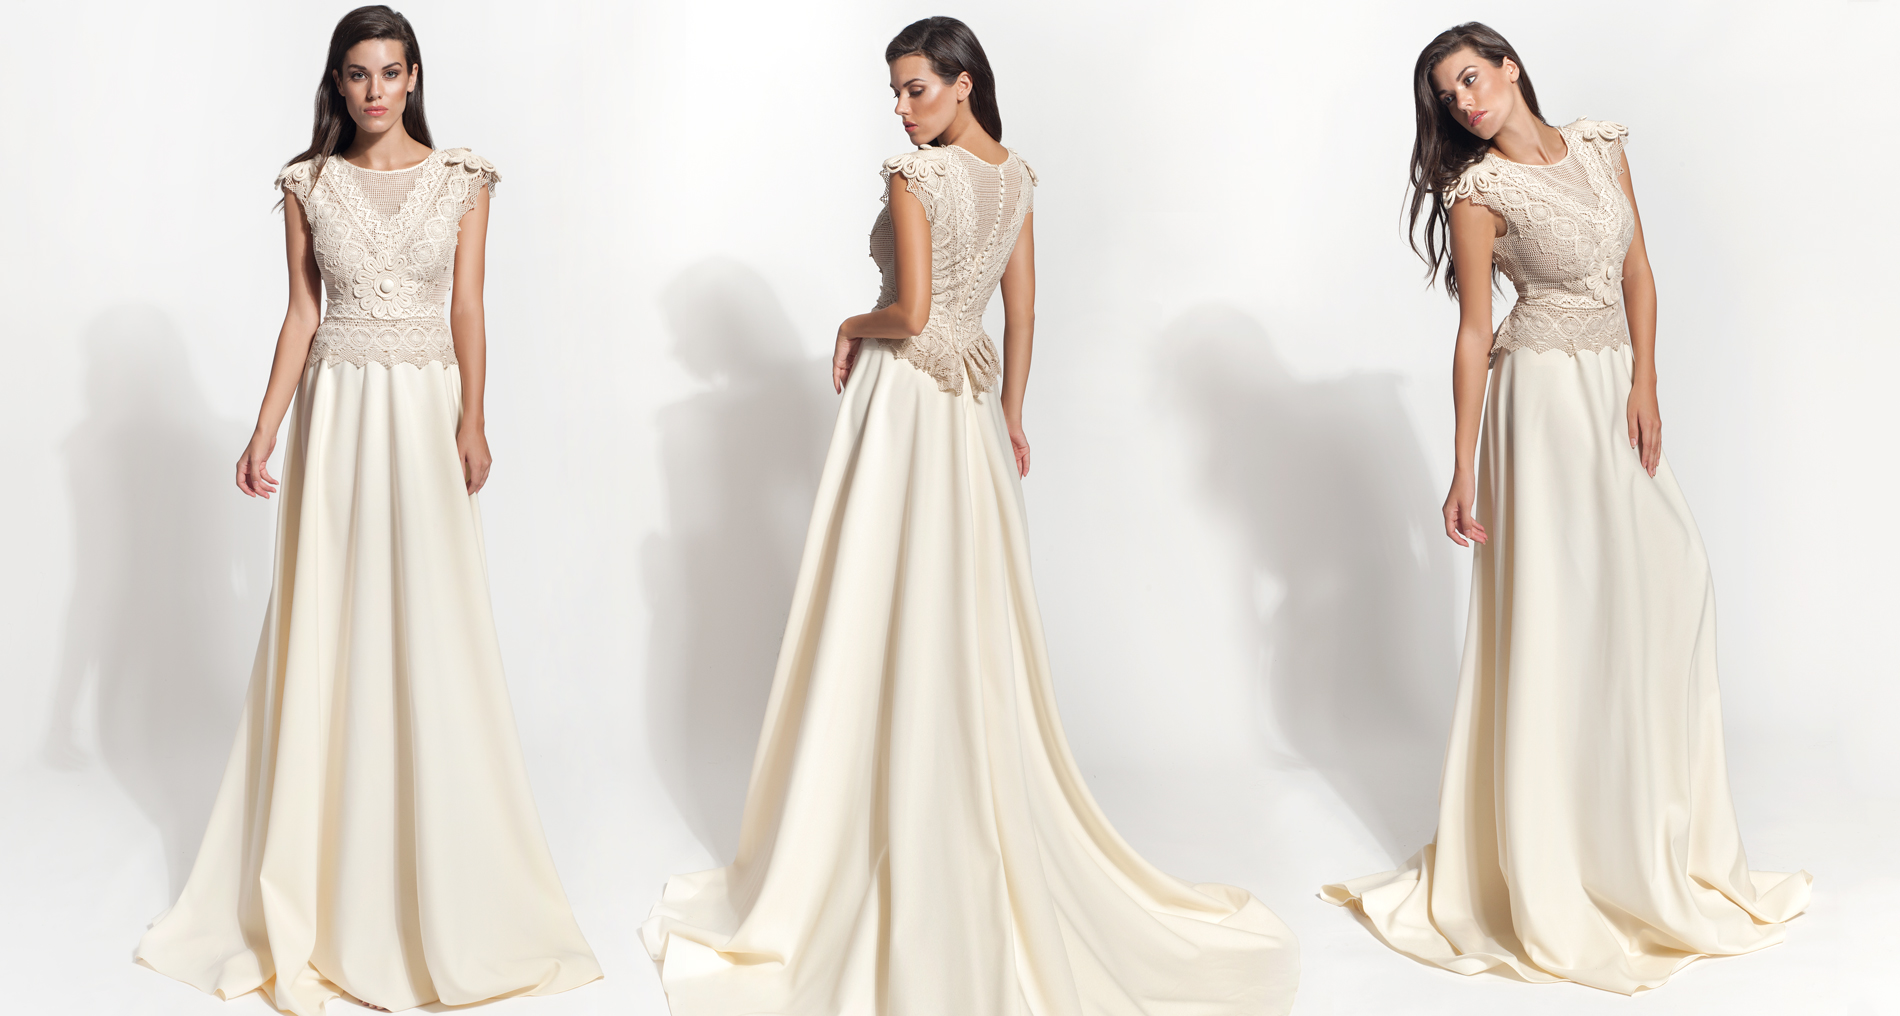 Avesia wedding dress from  Hellenic Vintage Core Collection